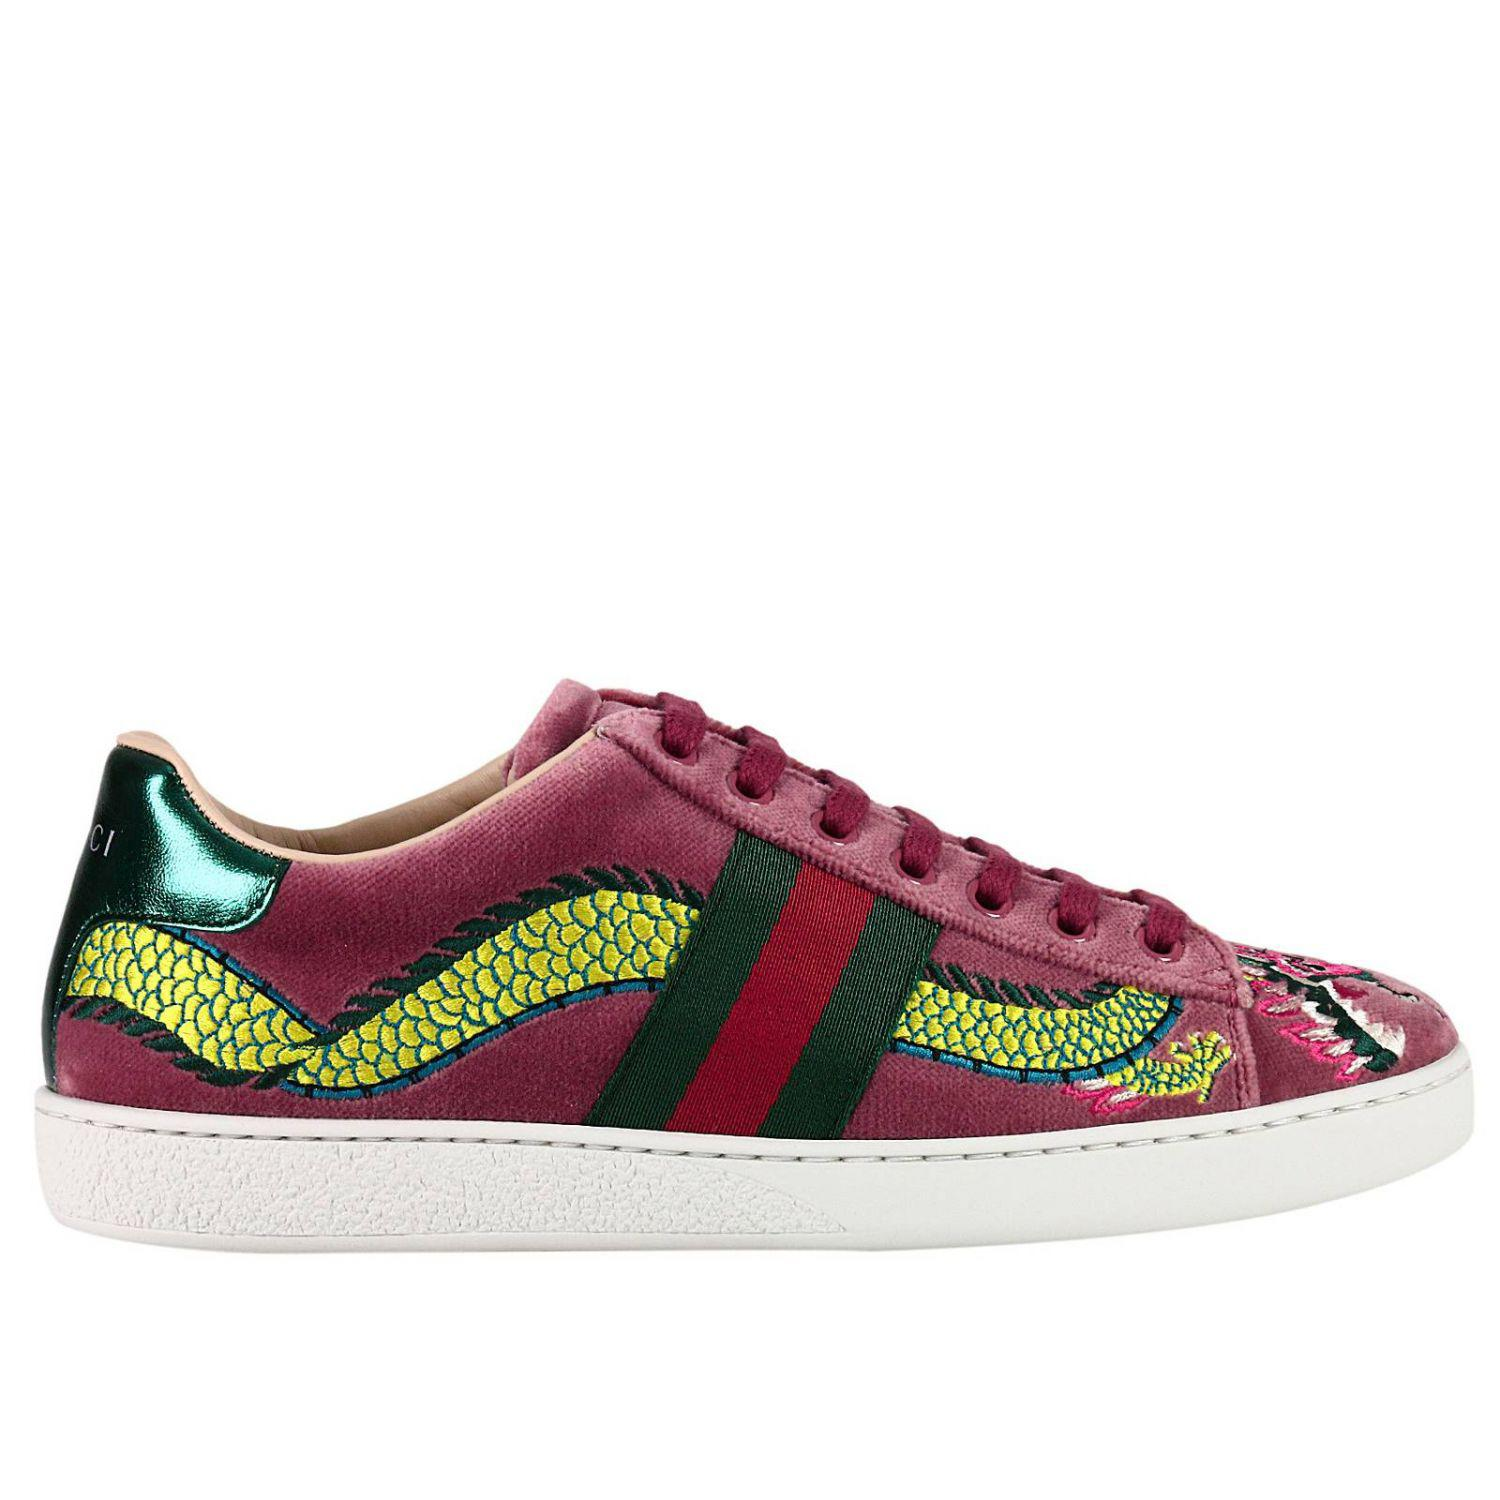 ab1e8bb2e842 Gucci Velvet New Ace Sneaker With Side Web Bands And Dragon ...